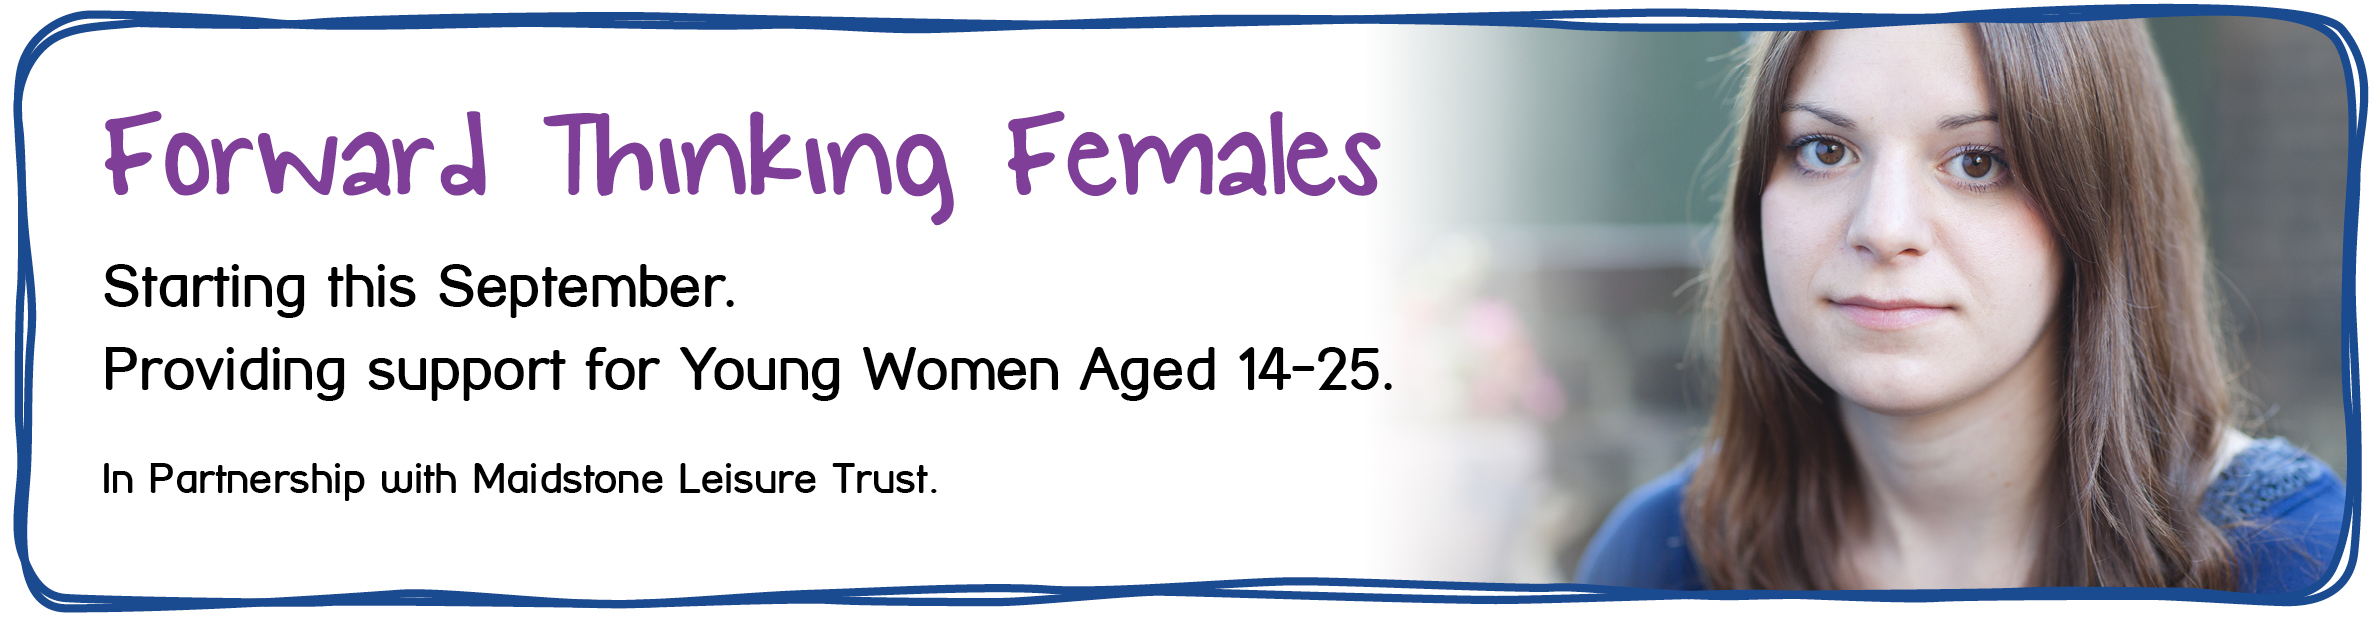 Youth Services - Forward Thinking Females - Support for young women aged 14-25.